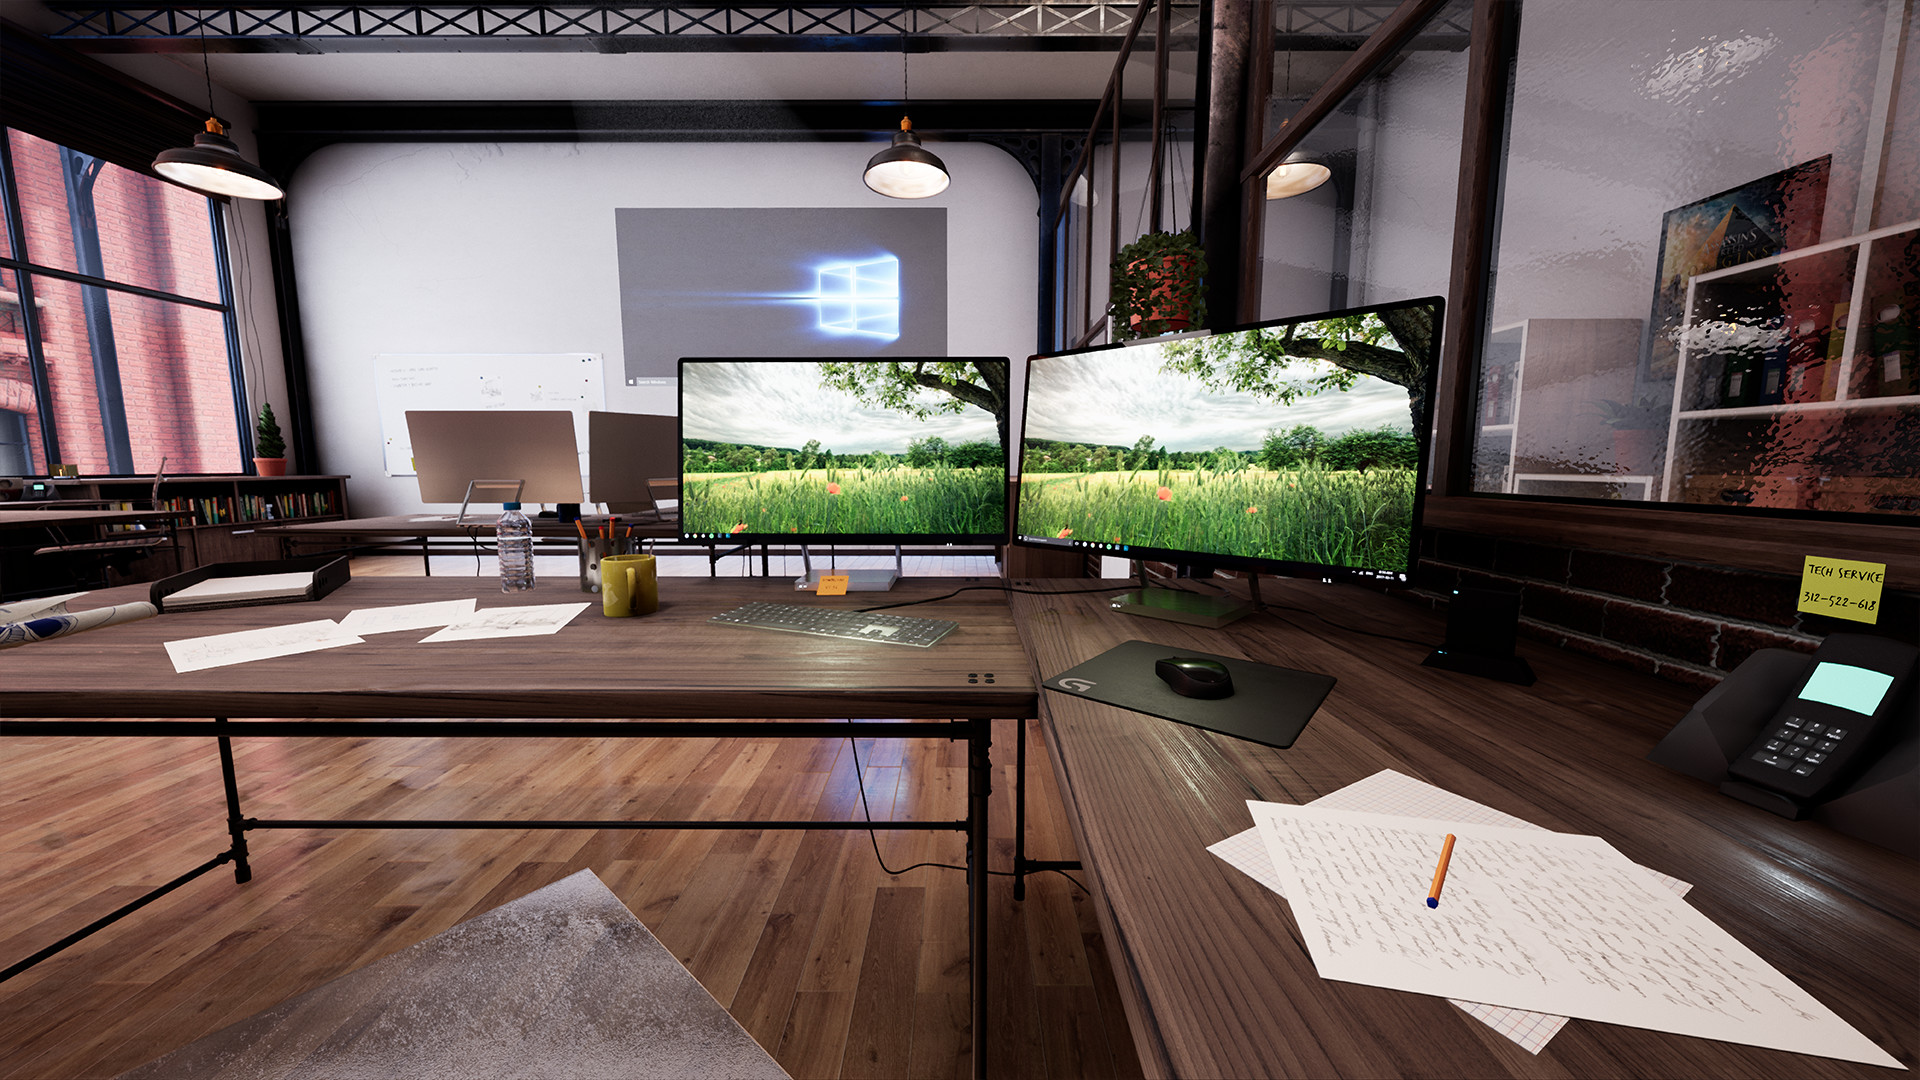 industrial office. Unreal Engine 4 - Industrial Office. The Whole Project In 4k 60fps. Office